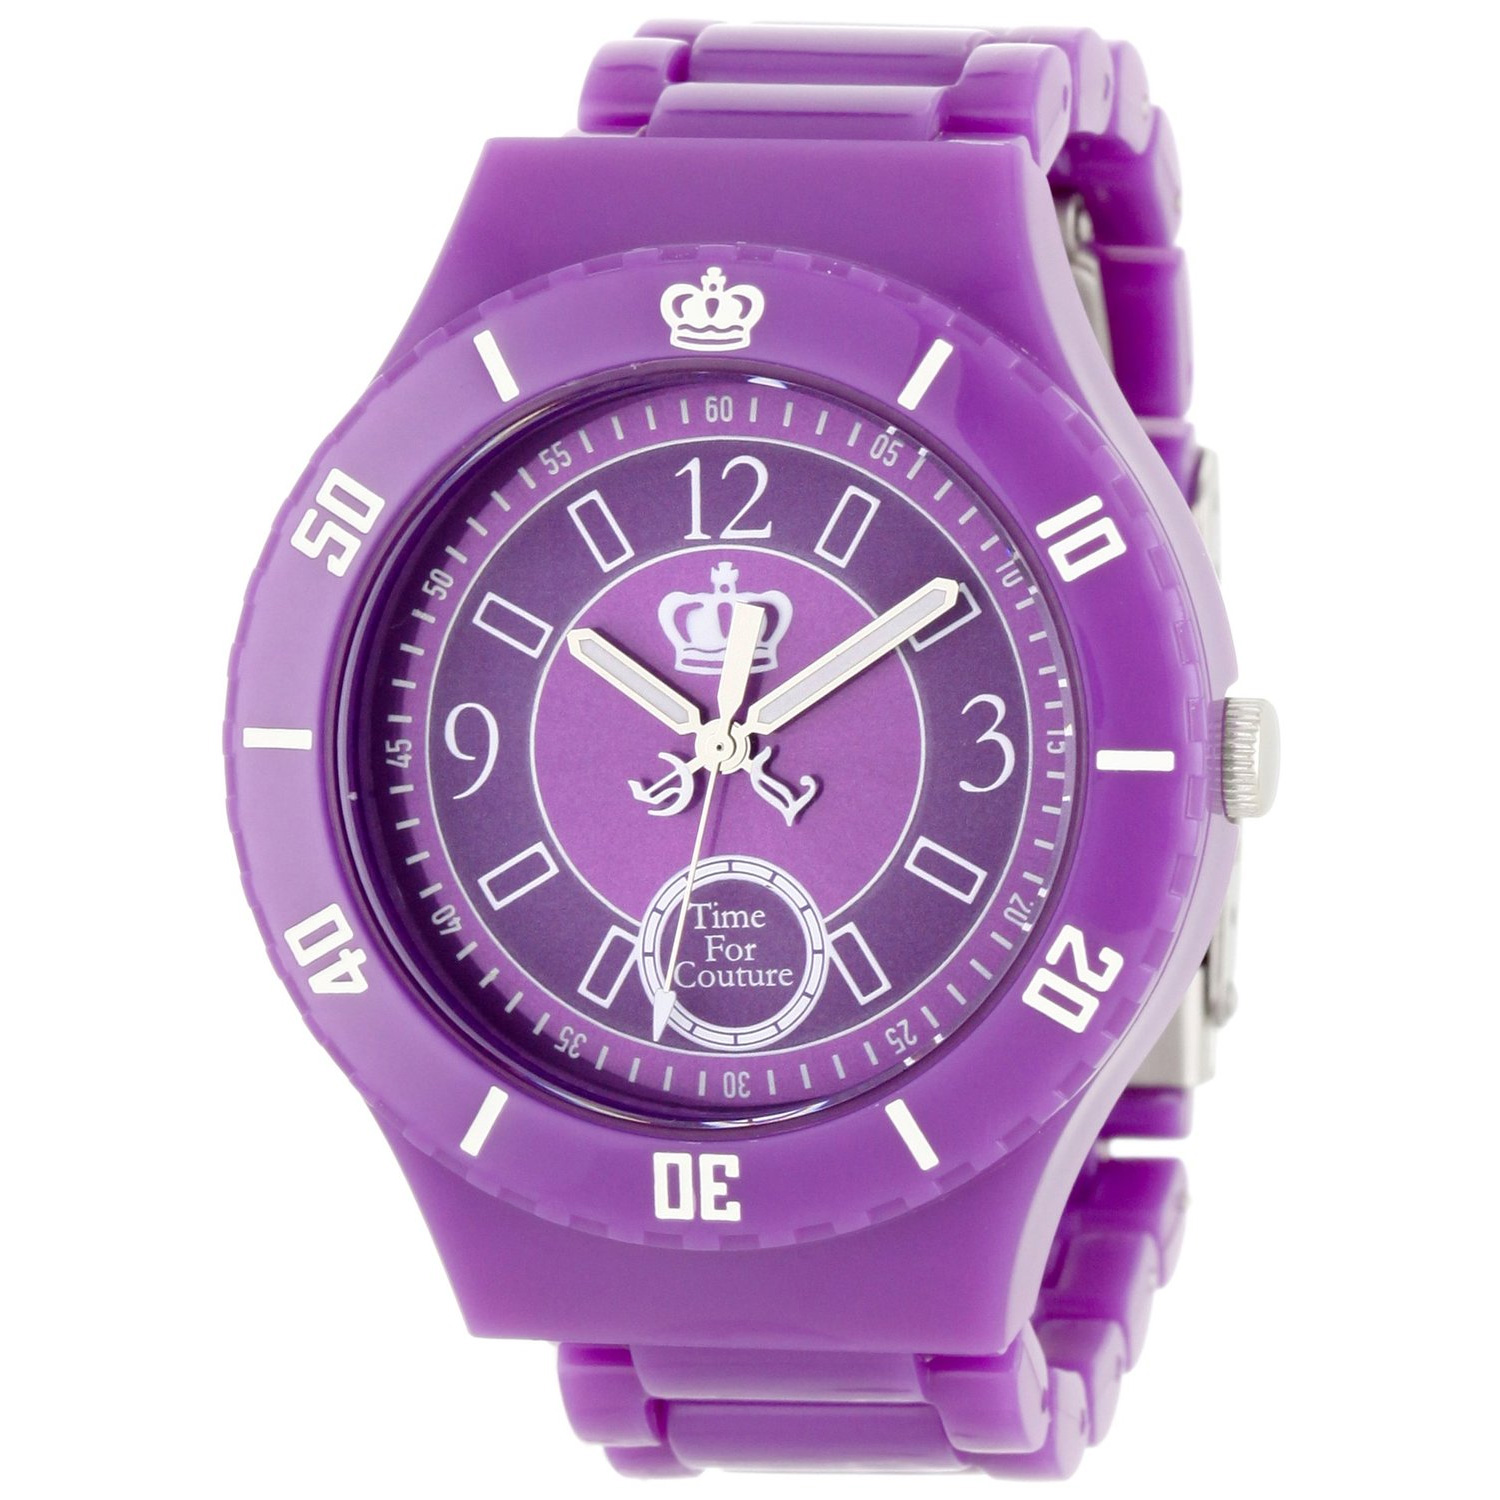 Orologio donna Juicy couture 1900813